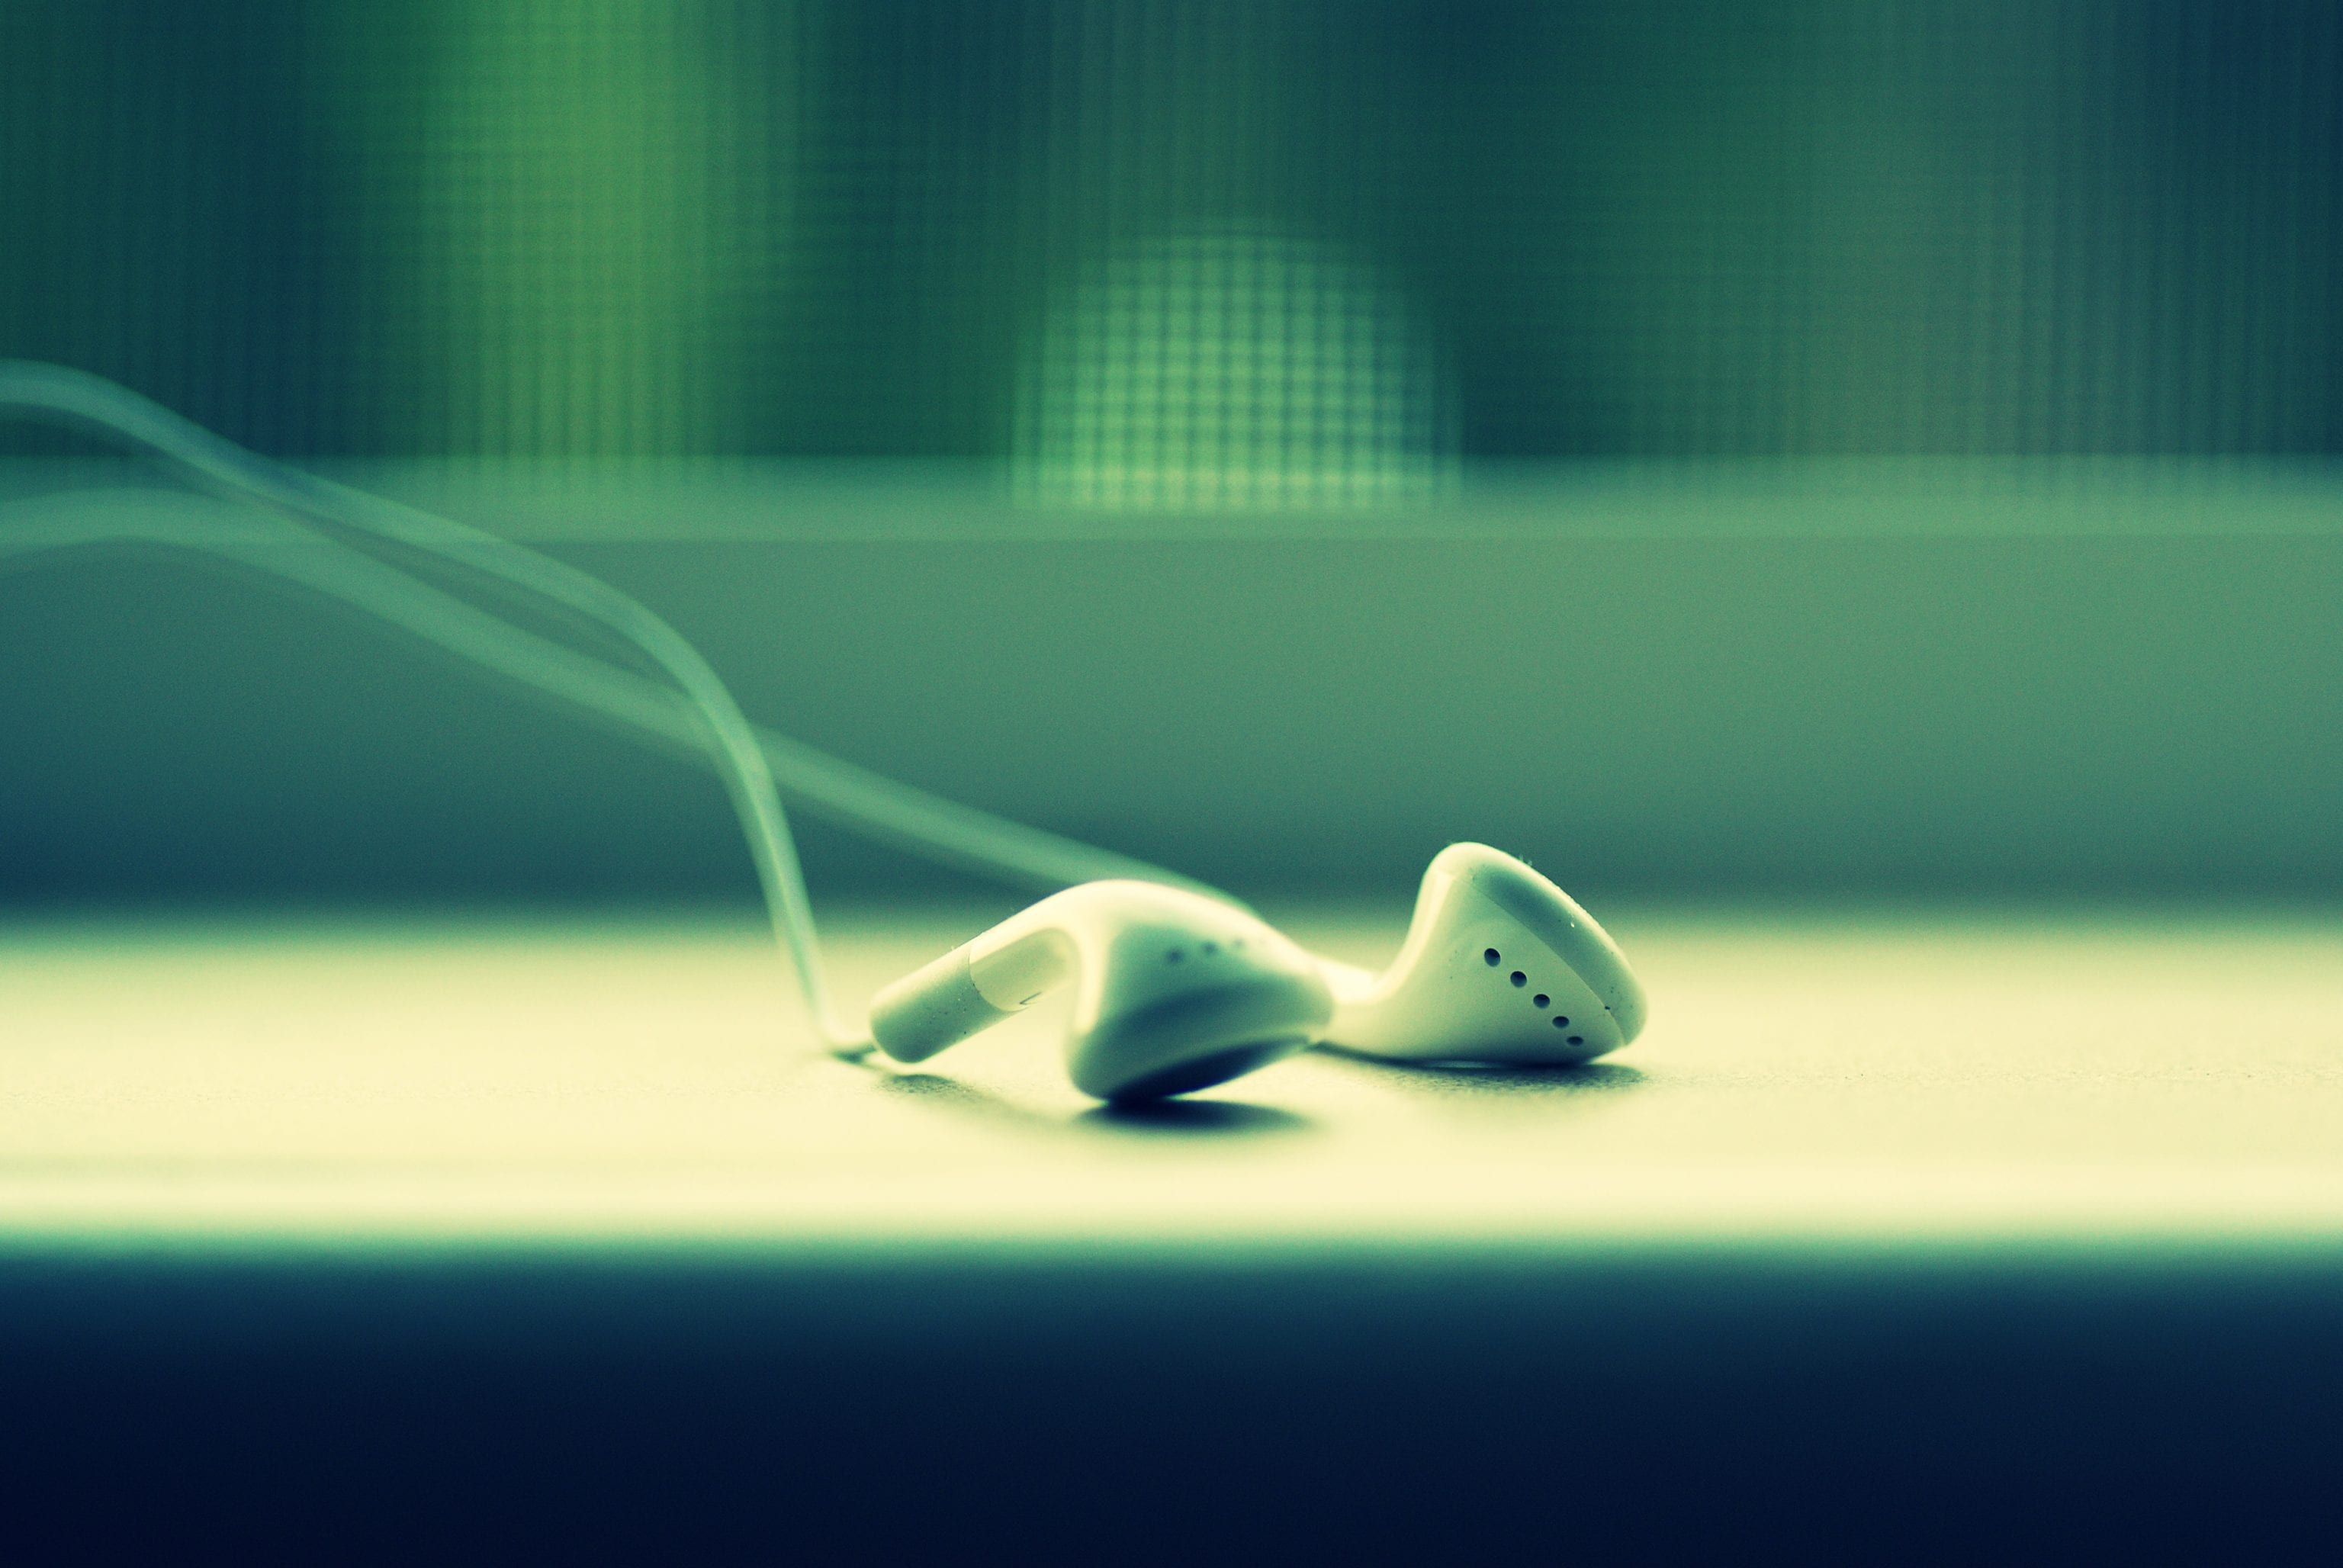 Todays Headphones Could Lead to Tomorrows Hearing Loss 1